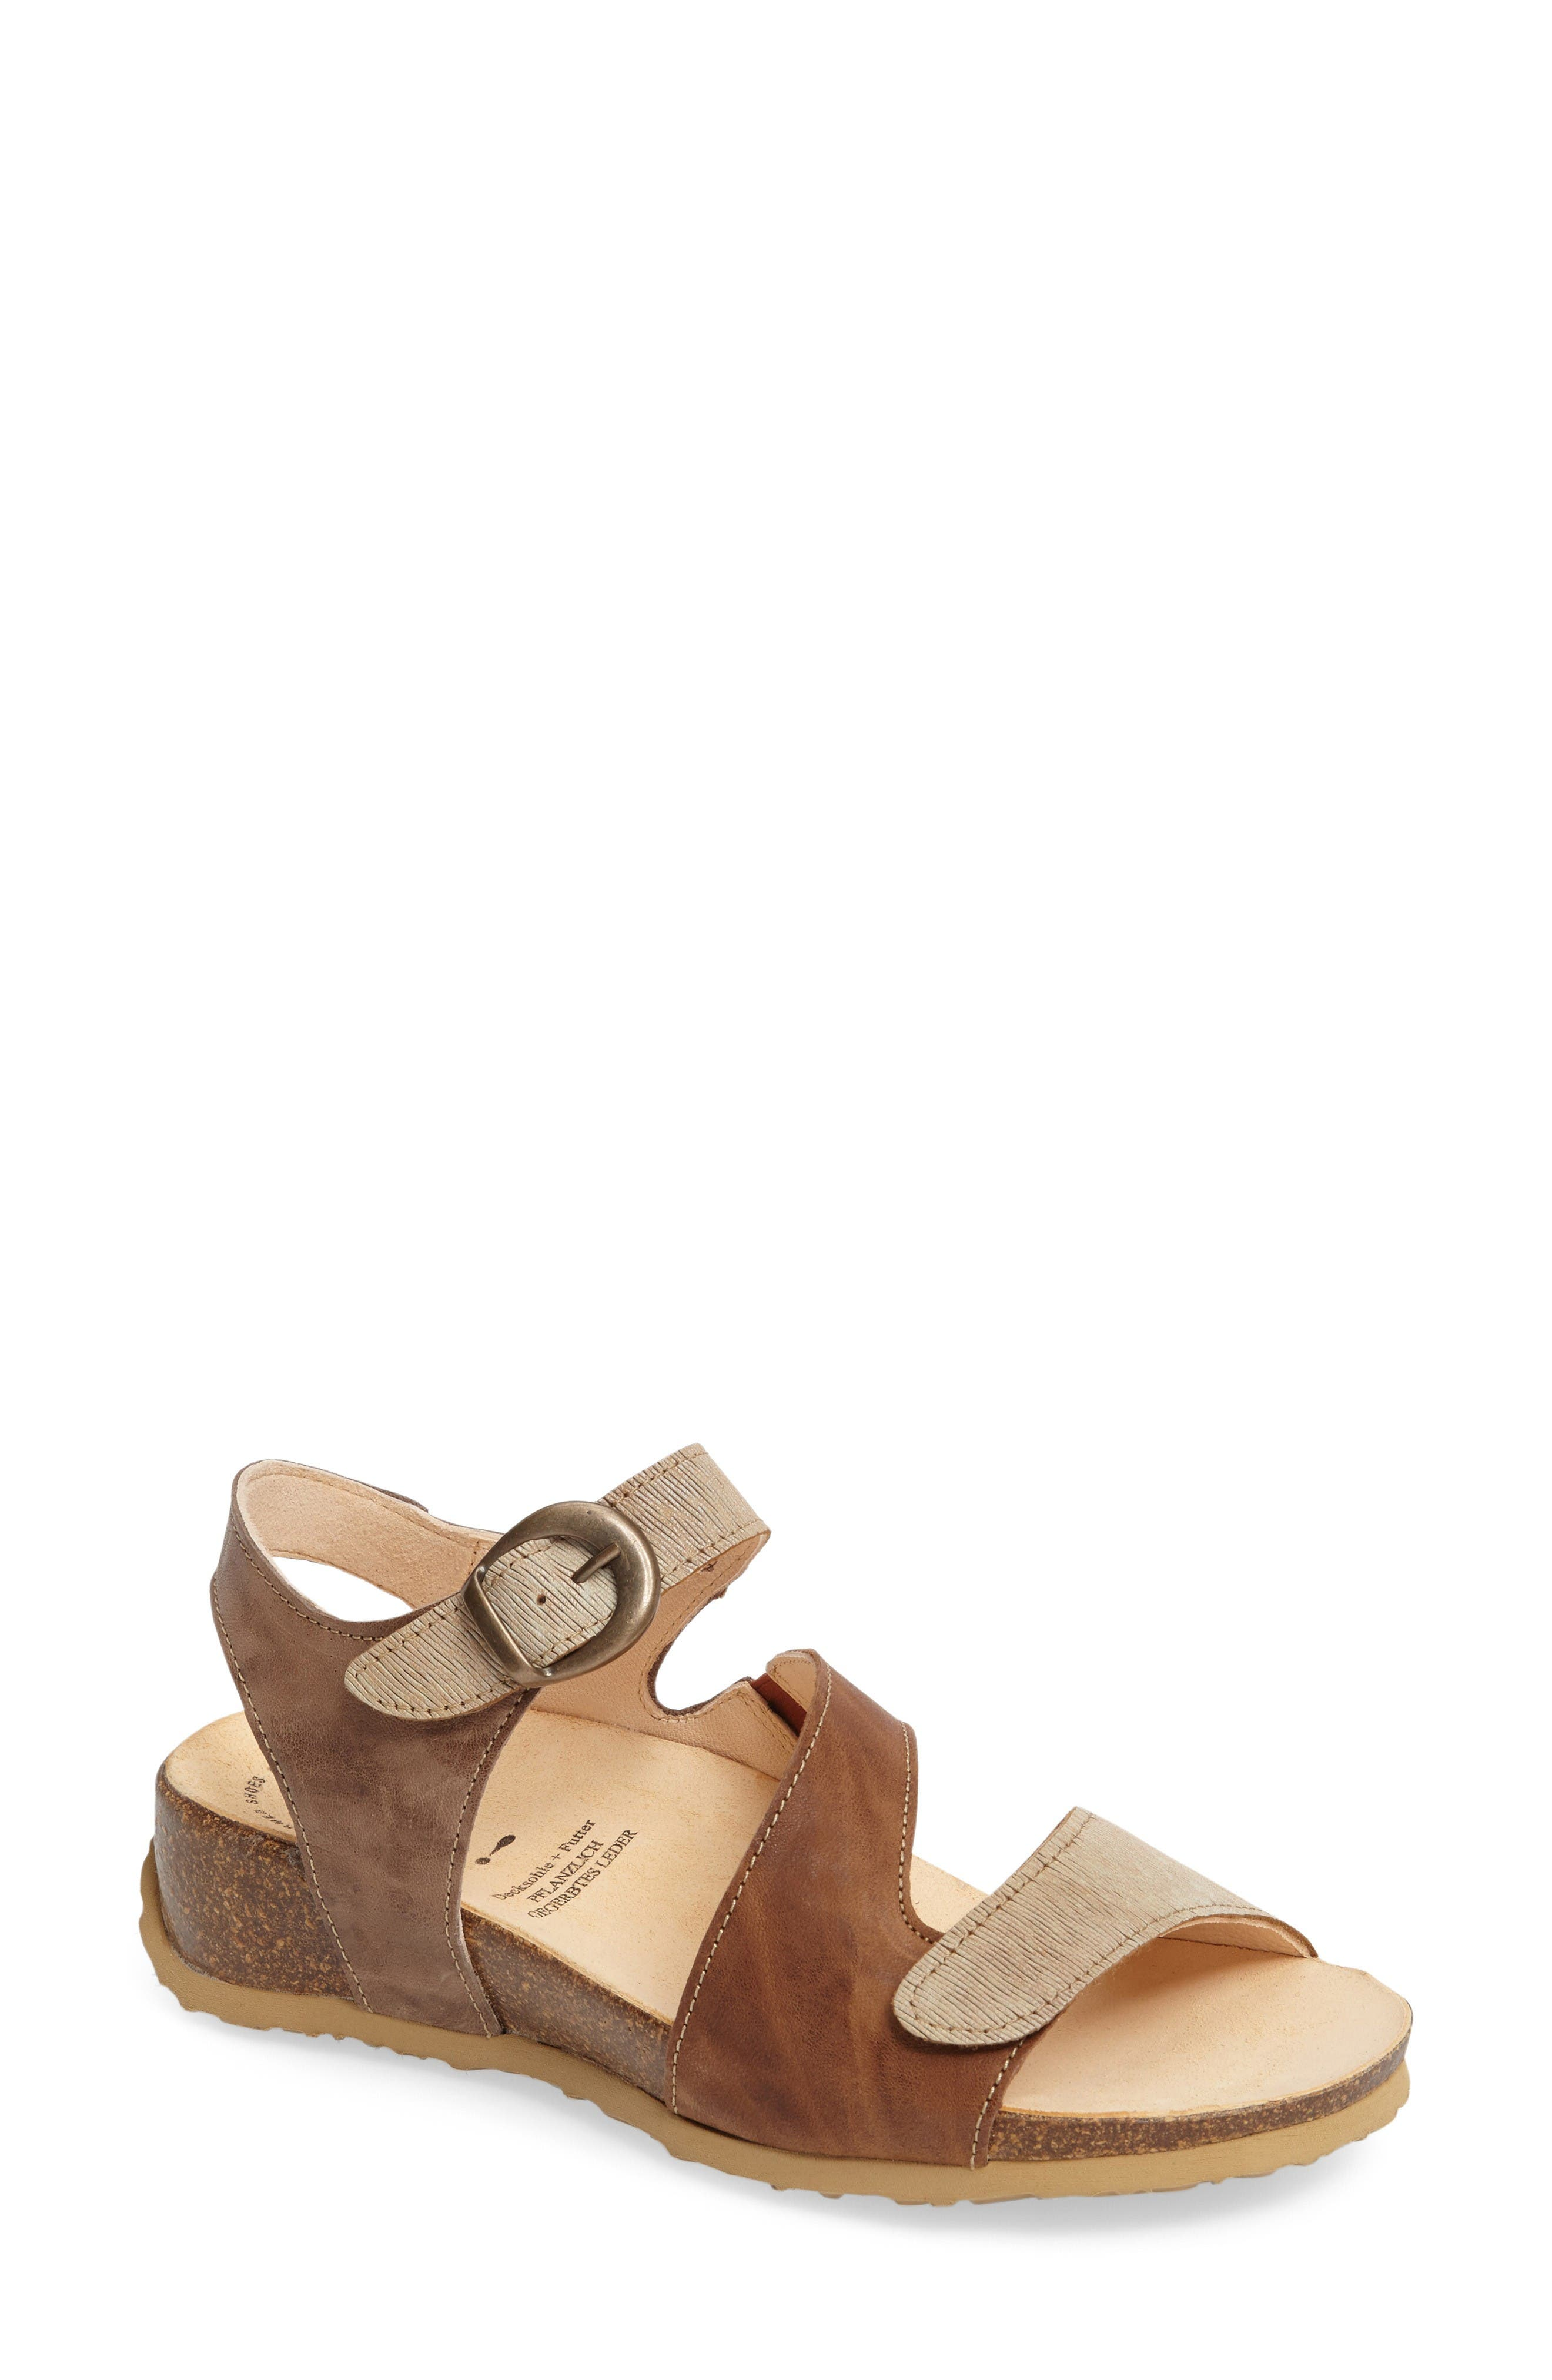 Main Image - Think! Mizzi Sandal (Women)